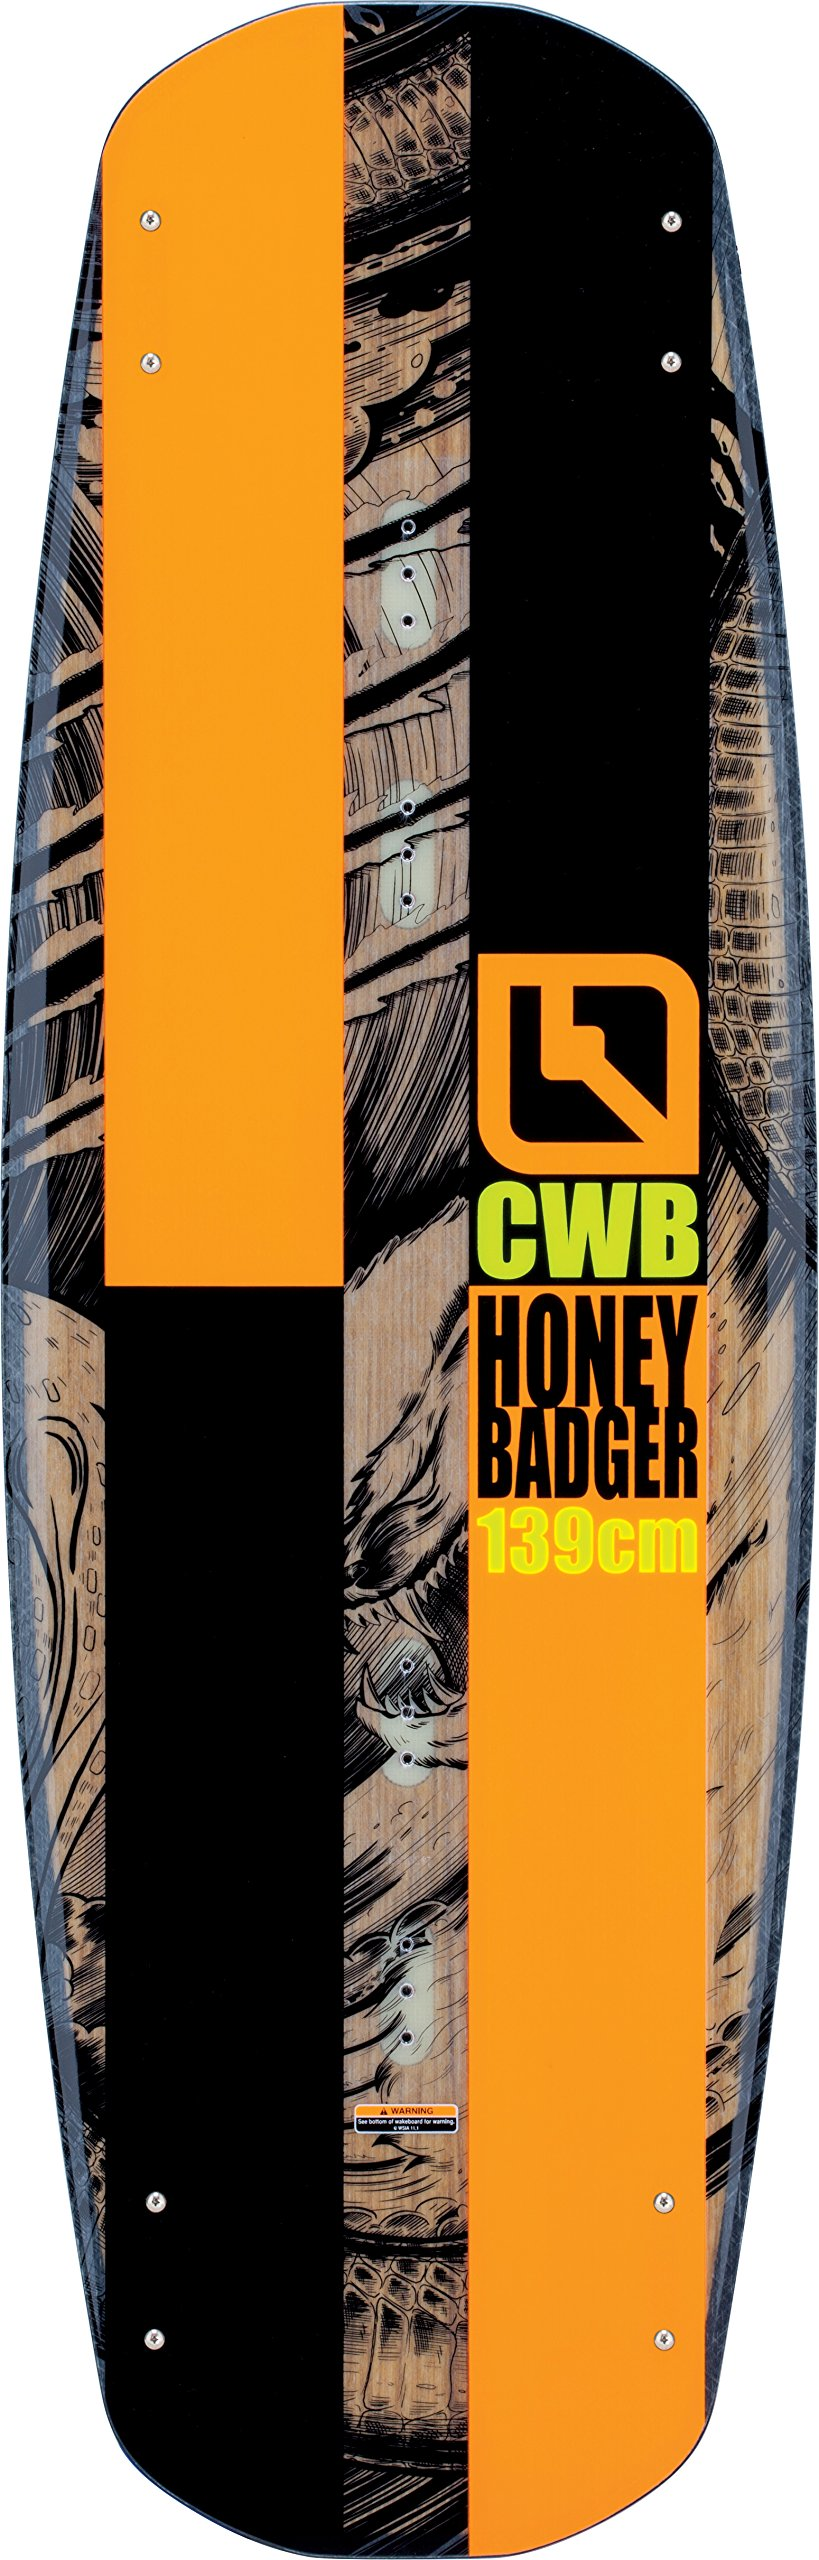 Connelly Honey Badger 2017 Venza Wakeboard for Age (9-12), 139cm/Large/X-Large